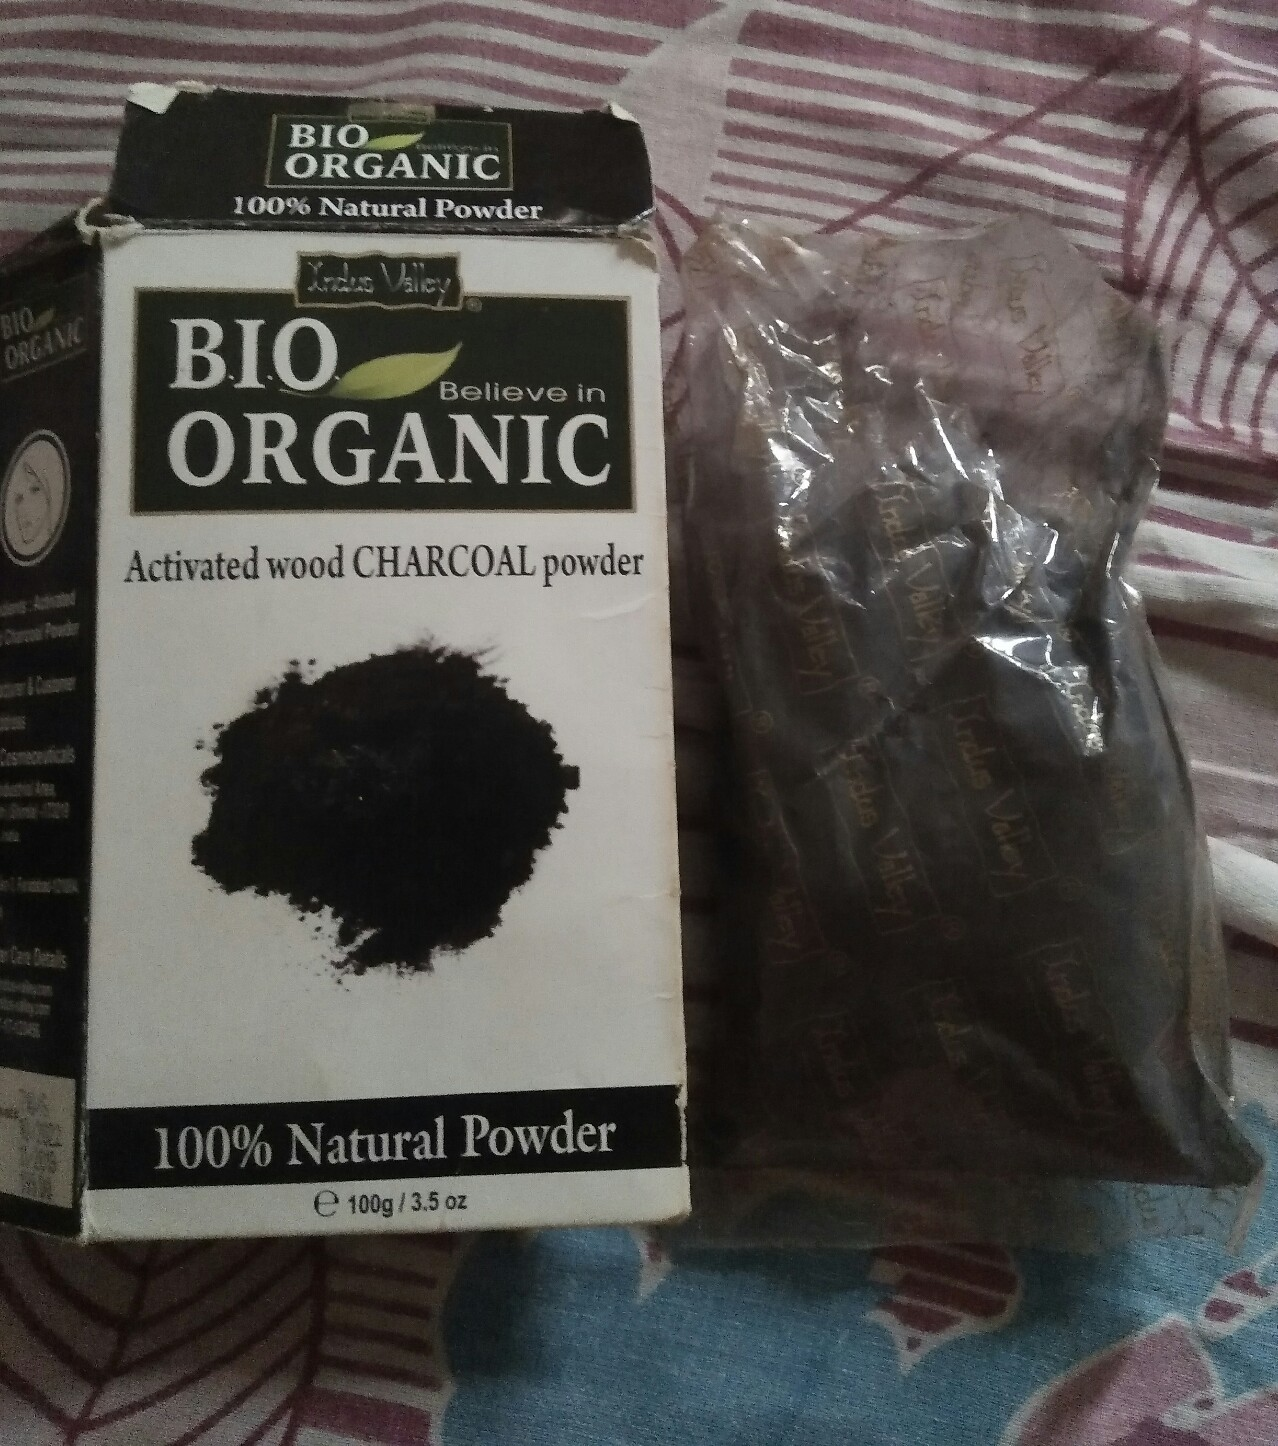 Indus Valley 100% Natural Activated Charcoal Powder pic 2-Skin detoxing-By niharika9